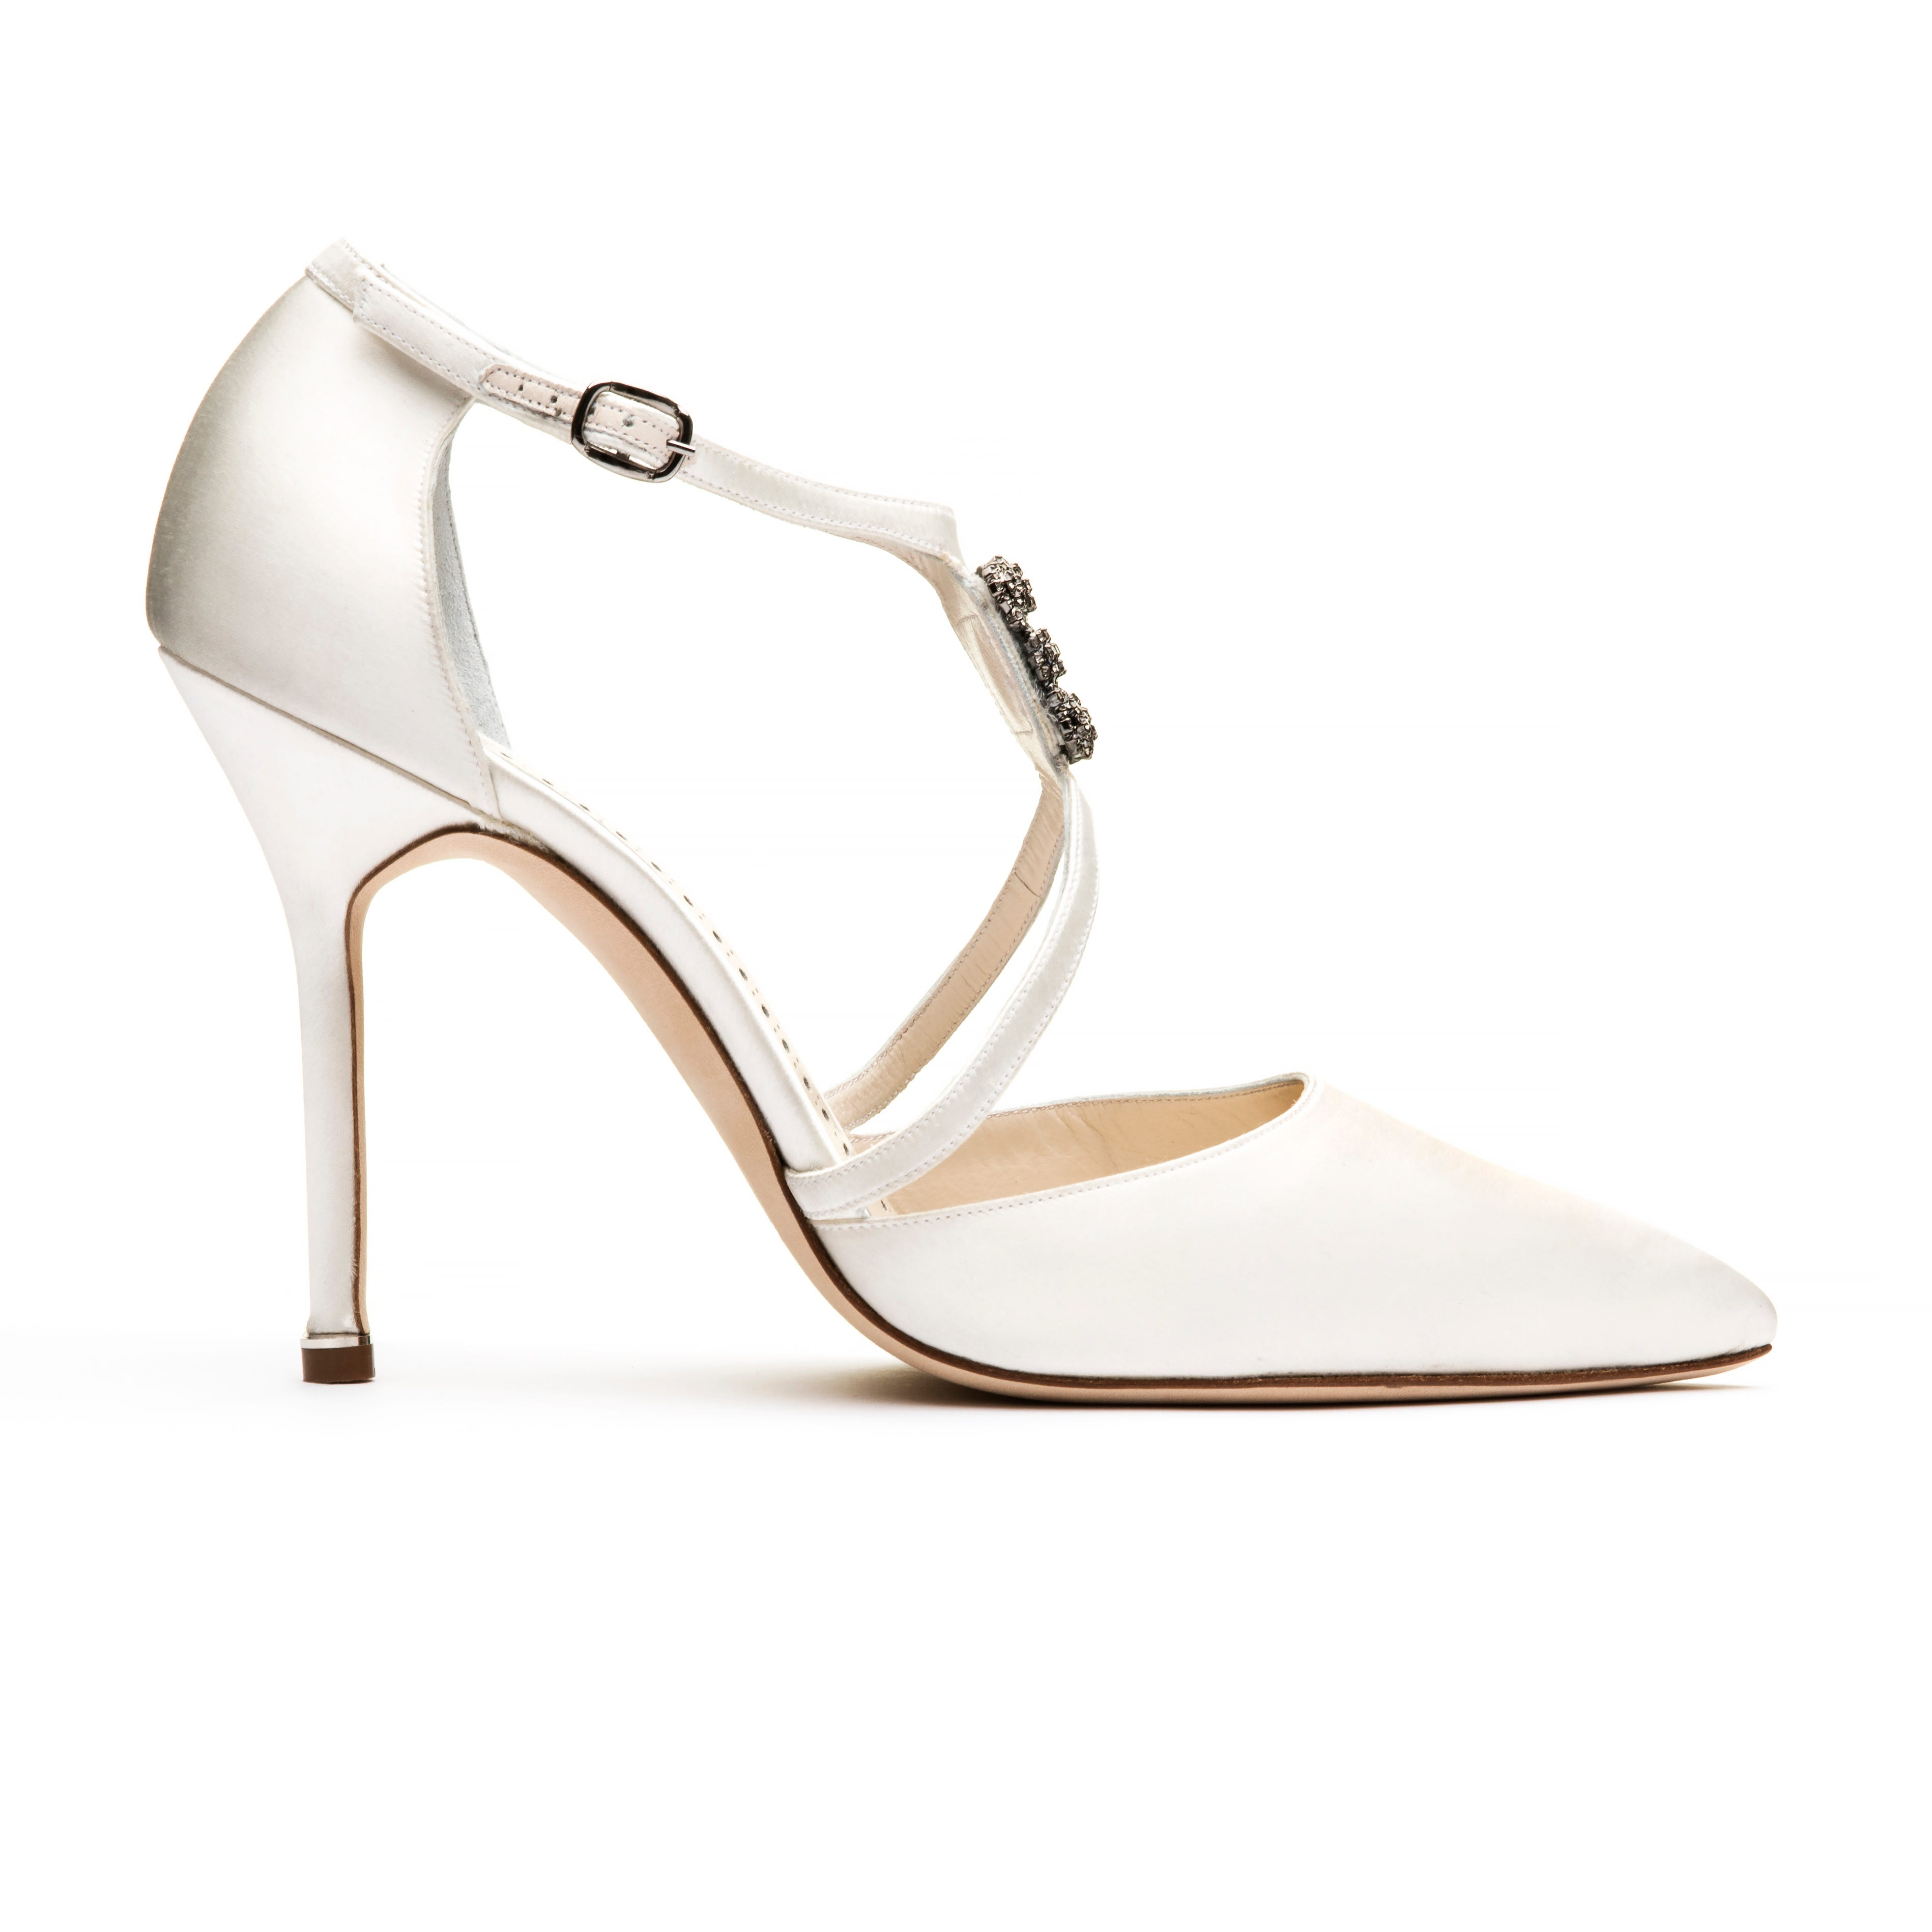 Manolo blahnik bridal collection launch wedding shoes junglespirit Gallery